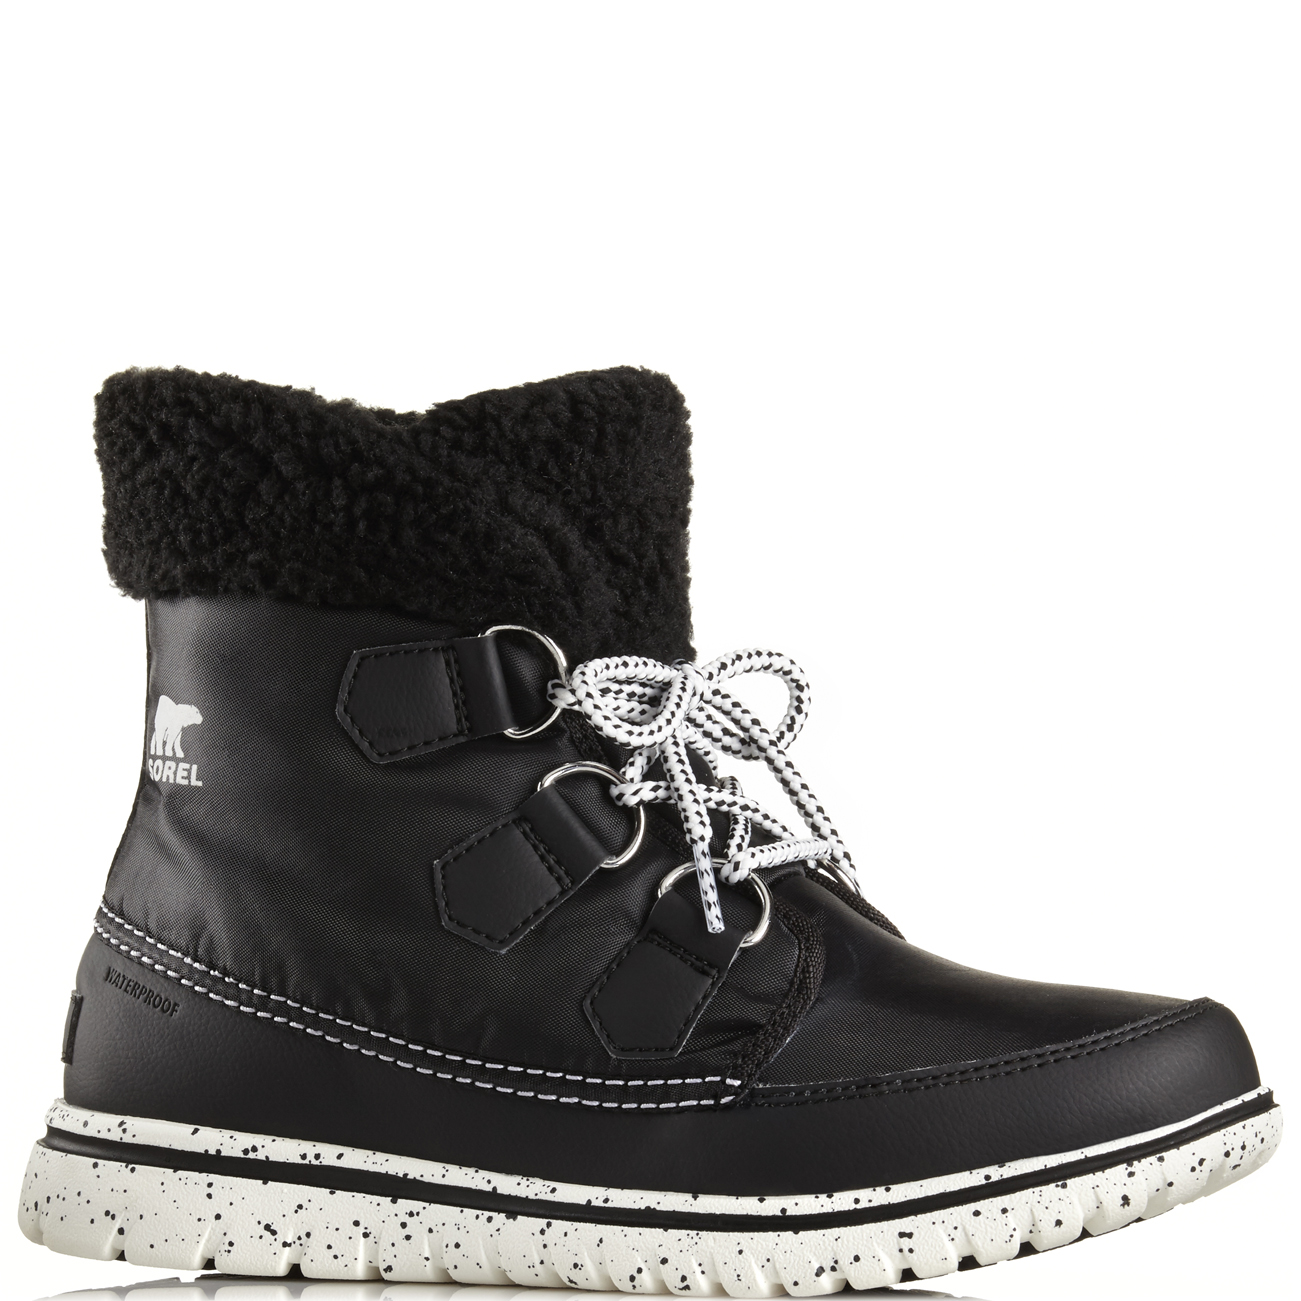 Womens Sorel Cozy Carnival Winter Walking Hiking Snow